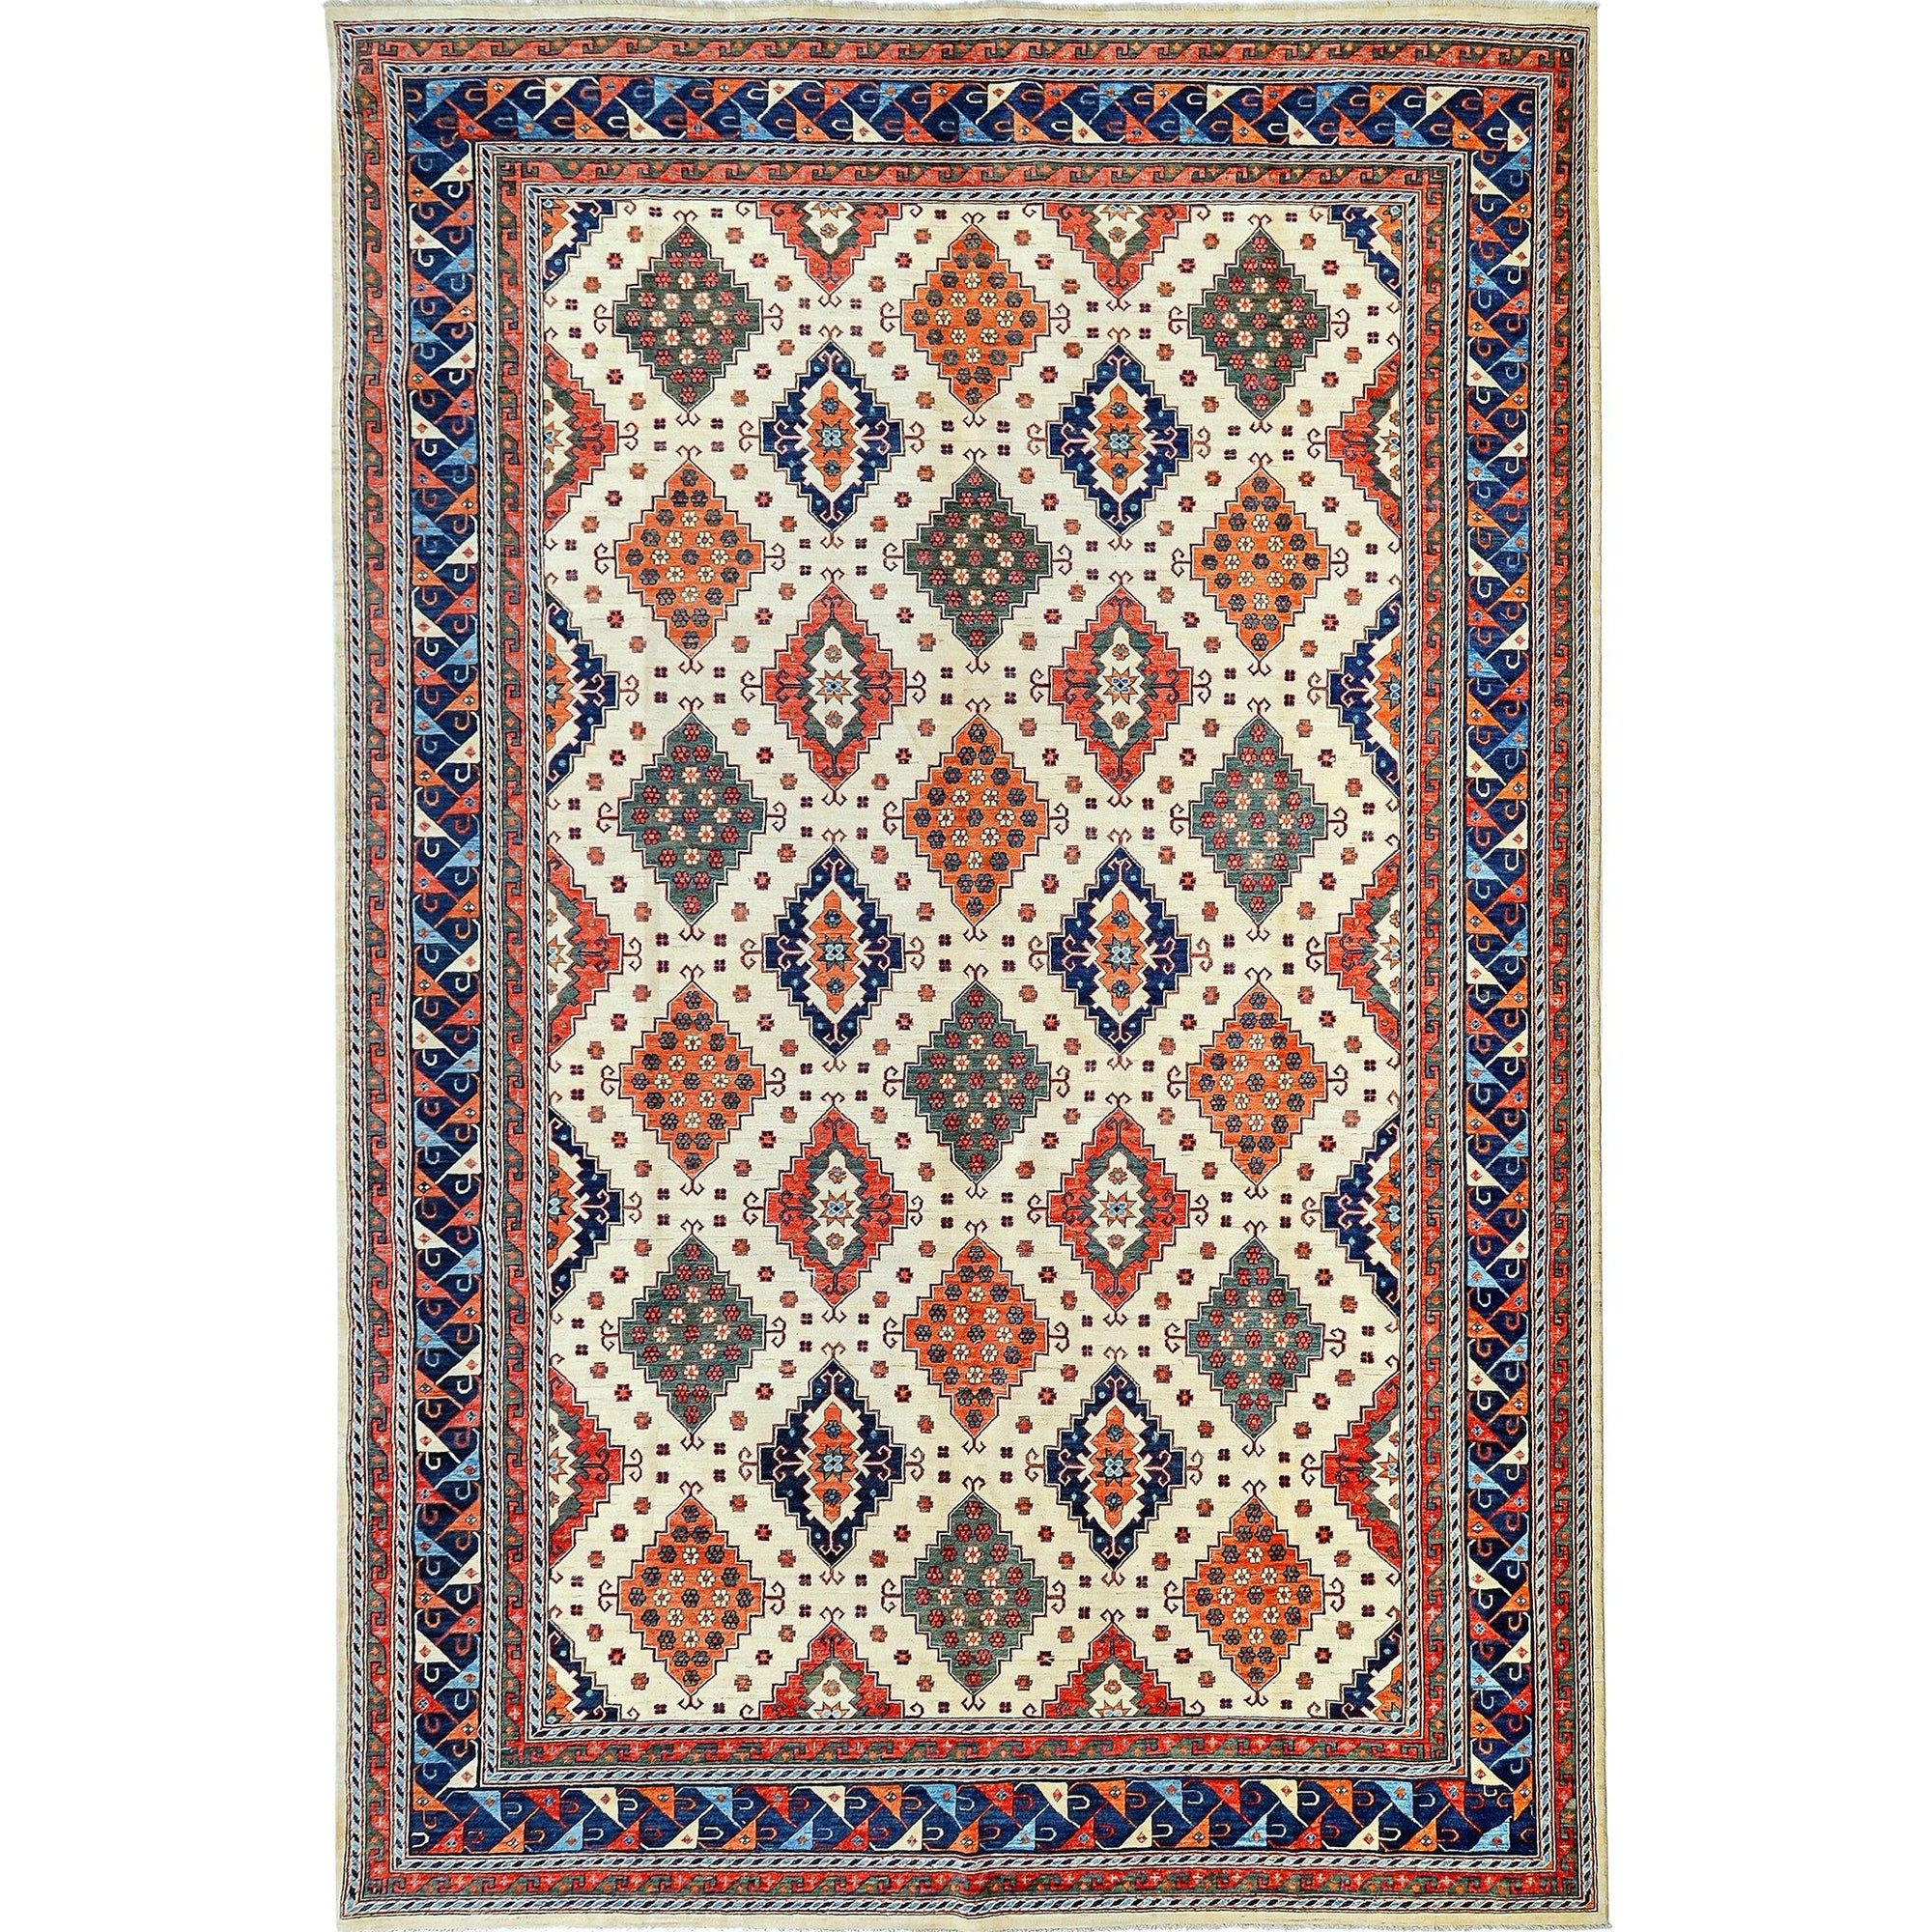 Fine Hand-knotted Wool Rug 299cm x 415cm Persian-Rug | House-of-Haghi | NewMarket | Auckland | NZ | Handmade Persian Rugs | Hand Knotted Persian Rugs